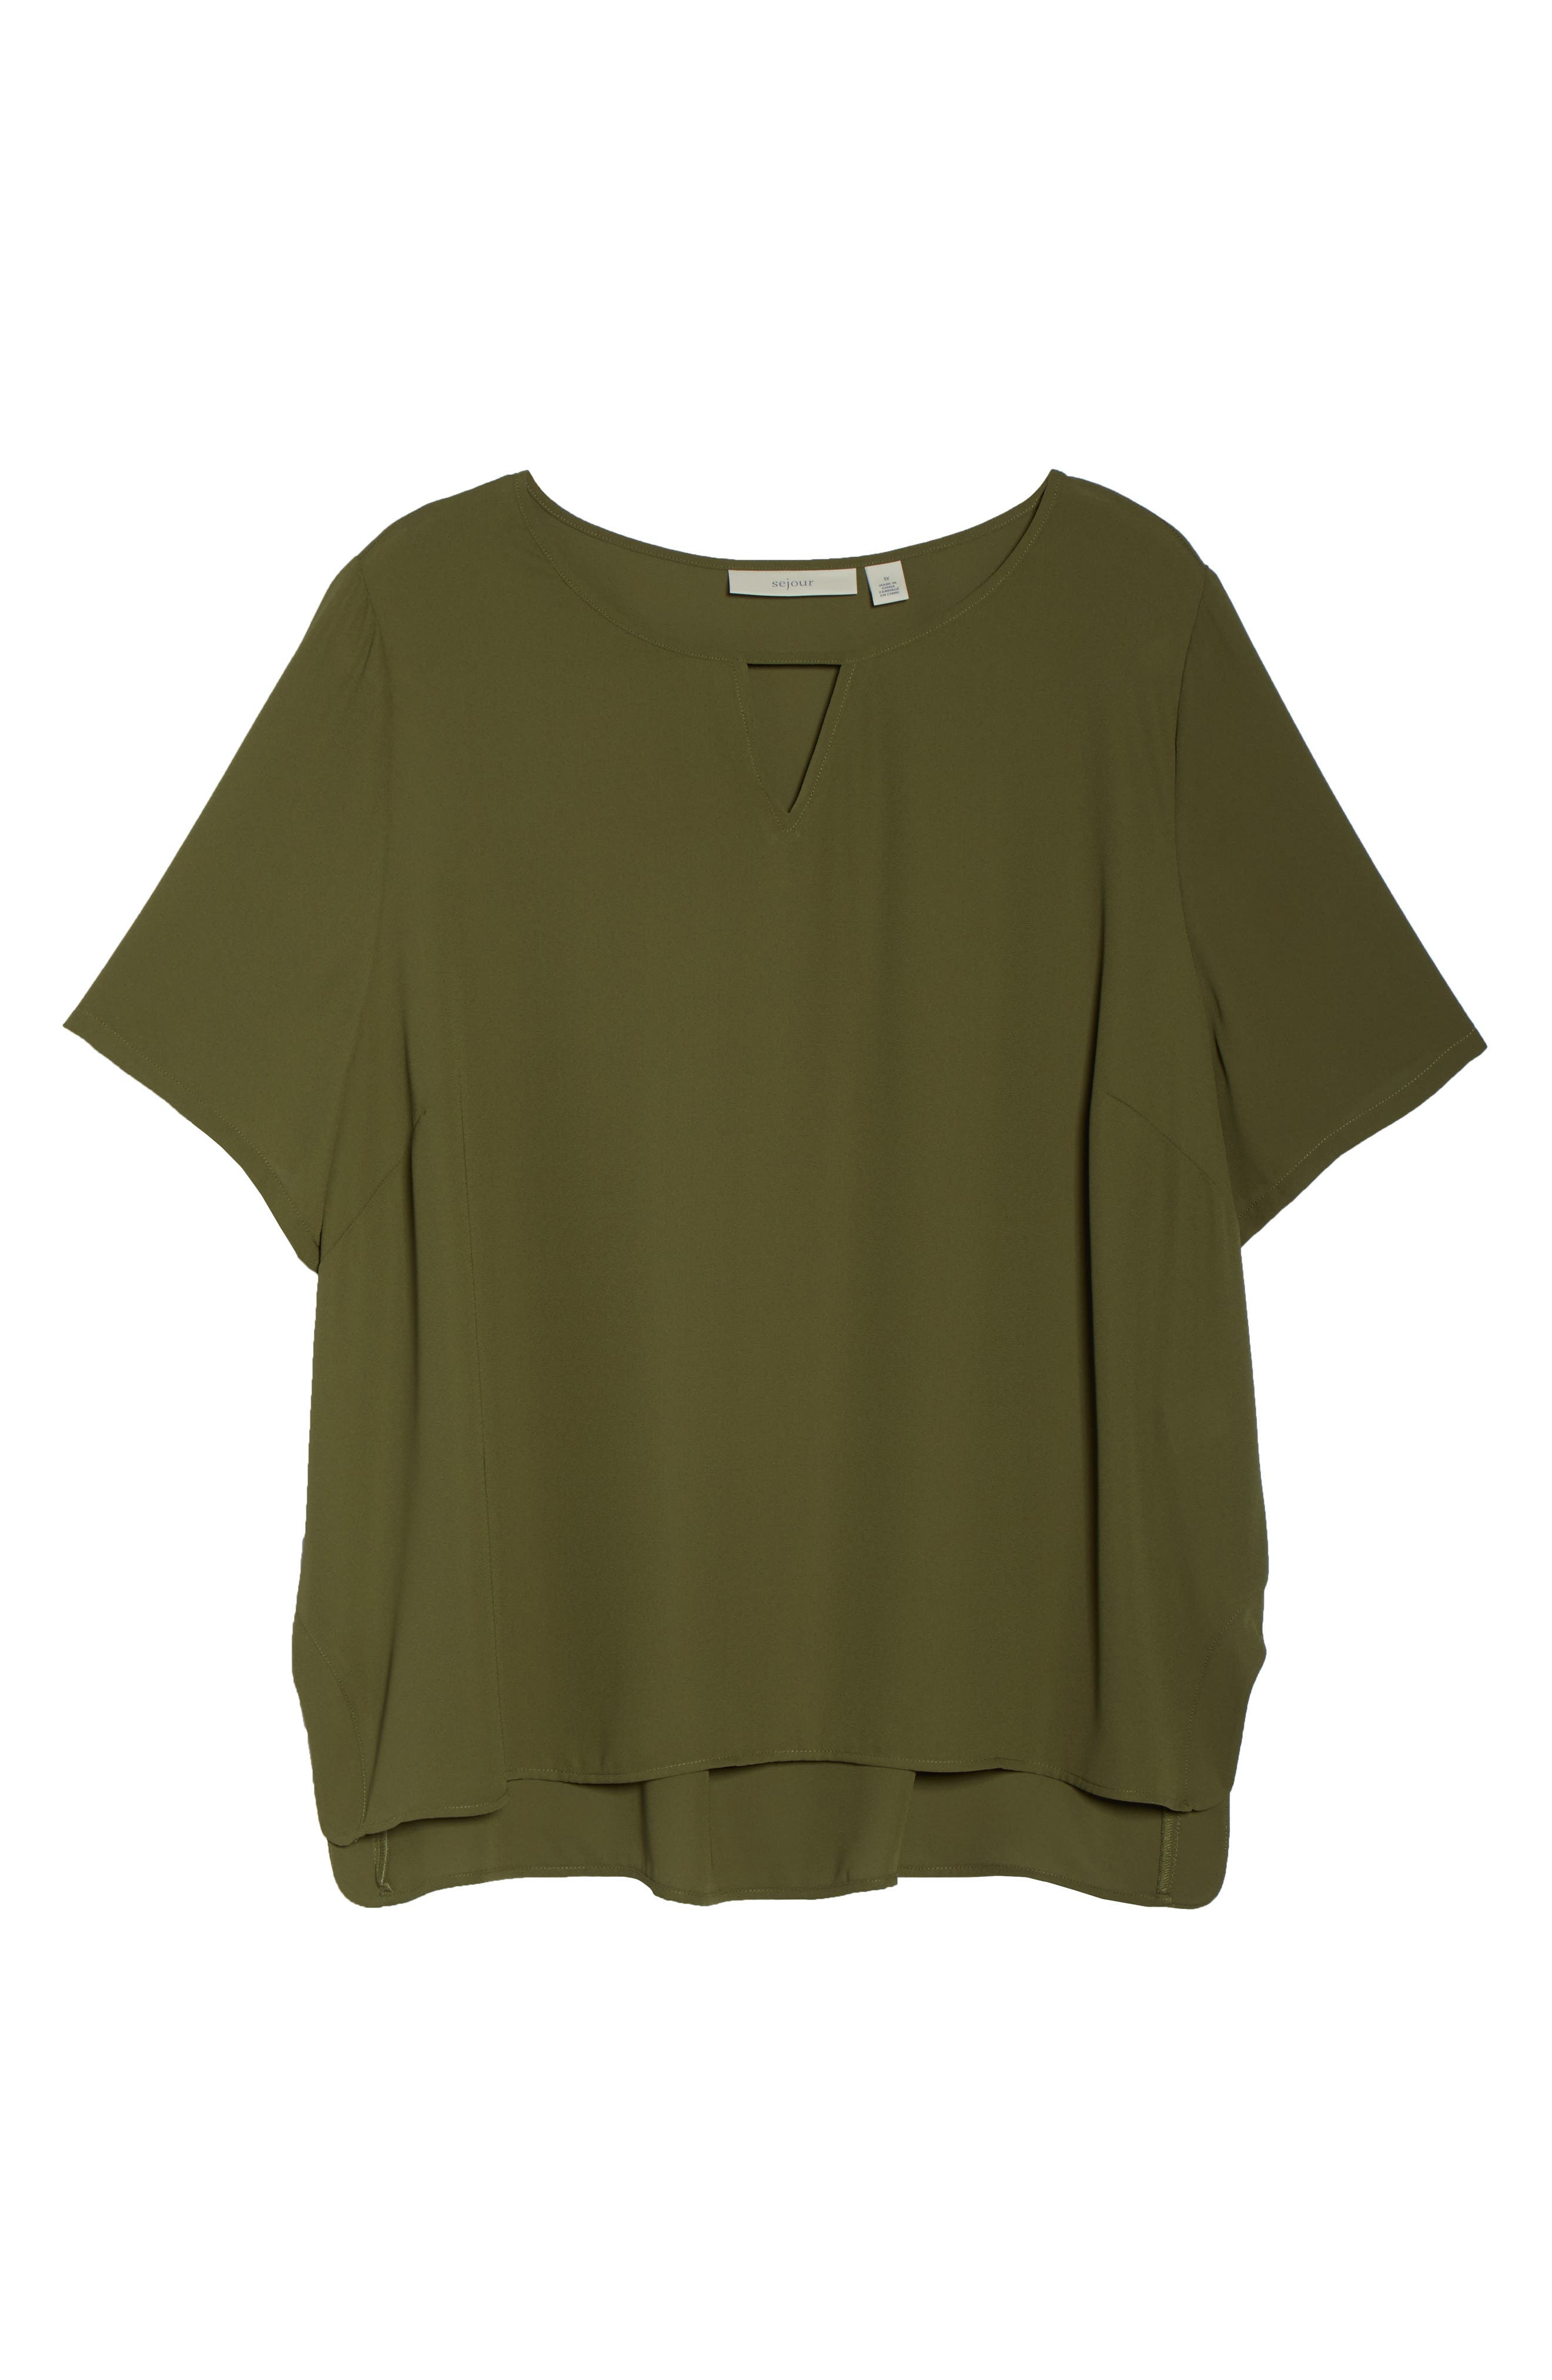 Curved High/Low Top,                             Alternate thumbnail 7, color,                             Olive Moss